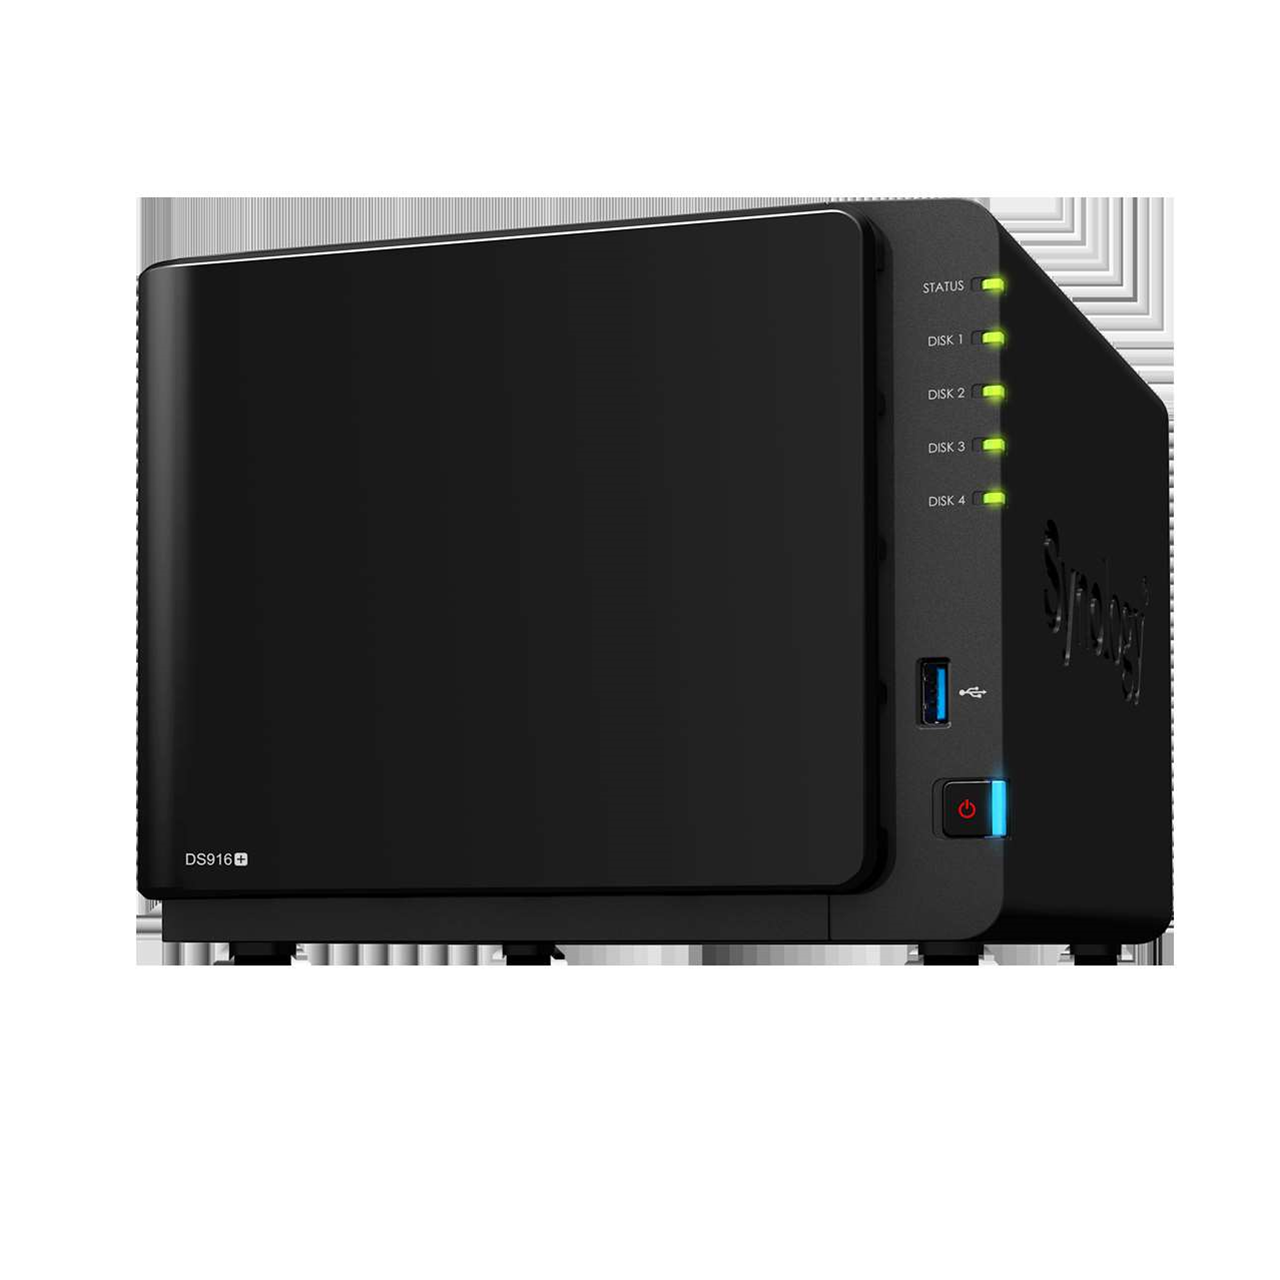 Synology reveals two new NAS products - the DS916+ and DS116